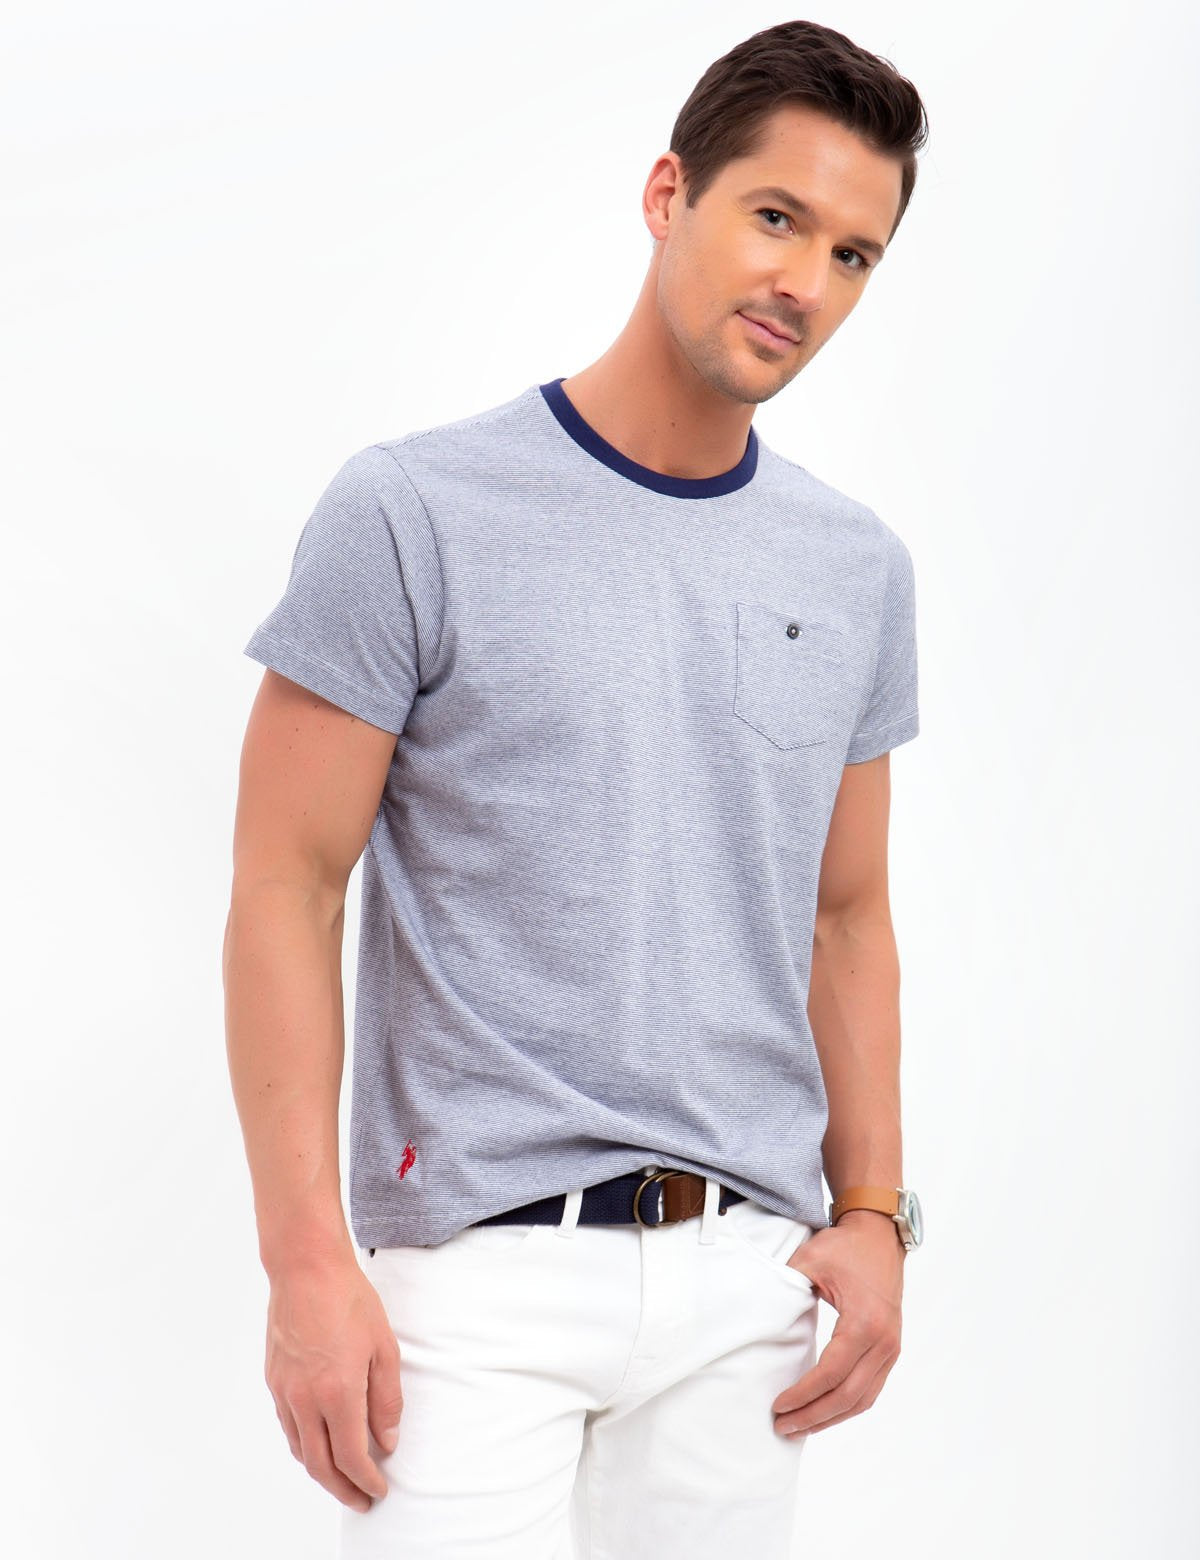 CREW NECK STRIPED TEE-SHIRT - U.S. Polo Assn.